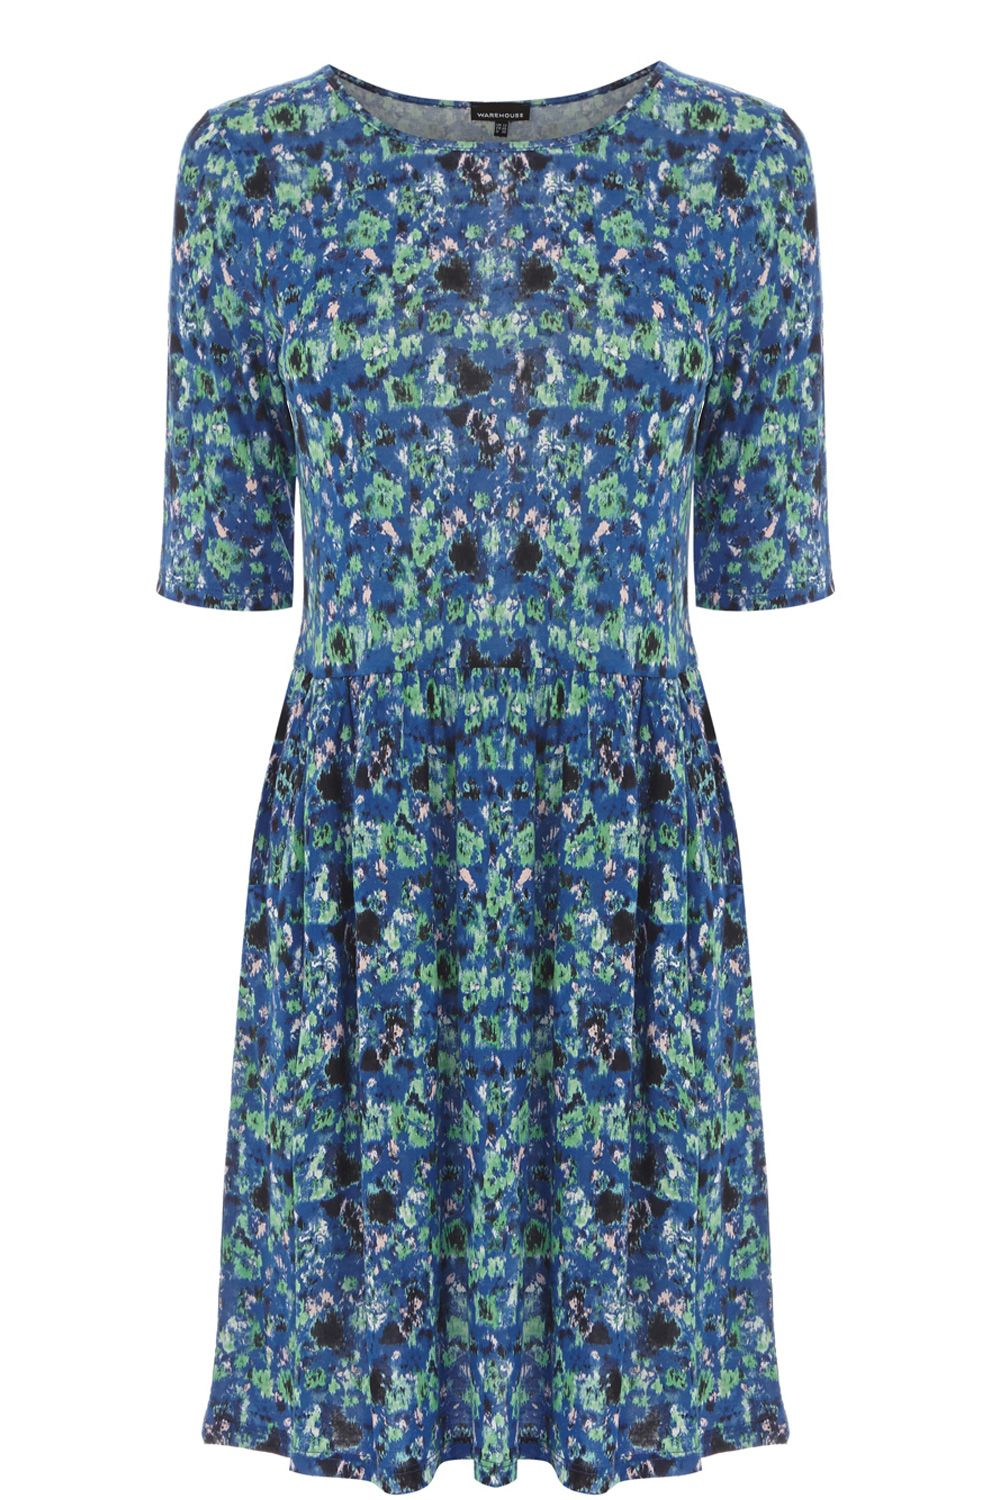 Blurred floral print day dress